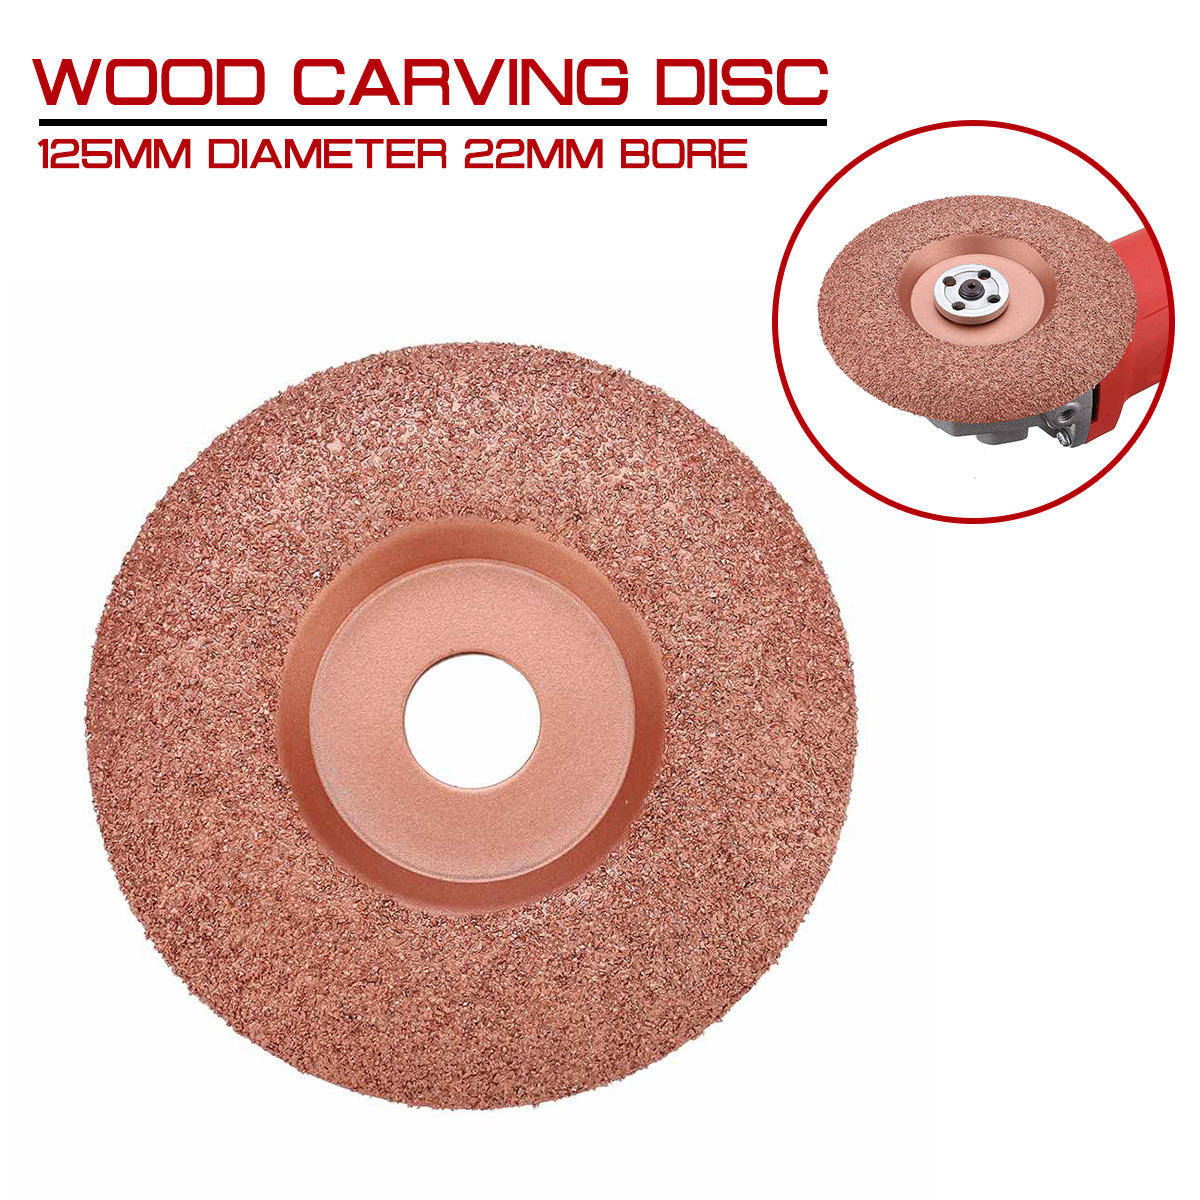 125mm Diameter 22mm Bore Wood Carving Disc Angle Grinder Disc Wood Shaping Disc Tungsten Carbide Shaping Dish